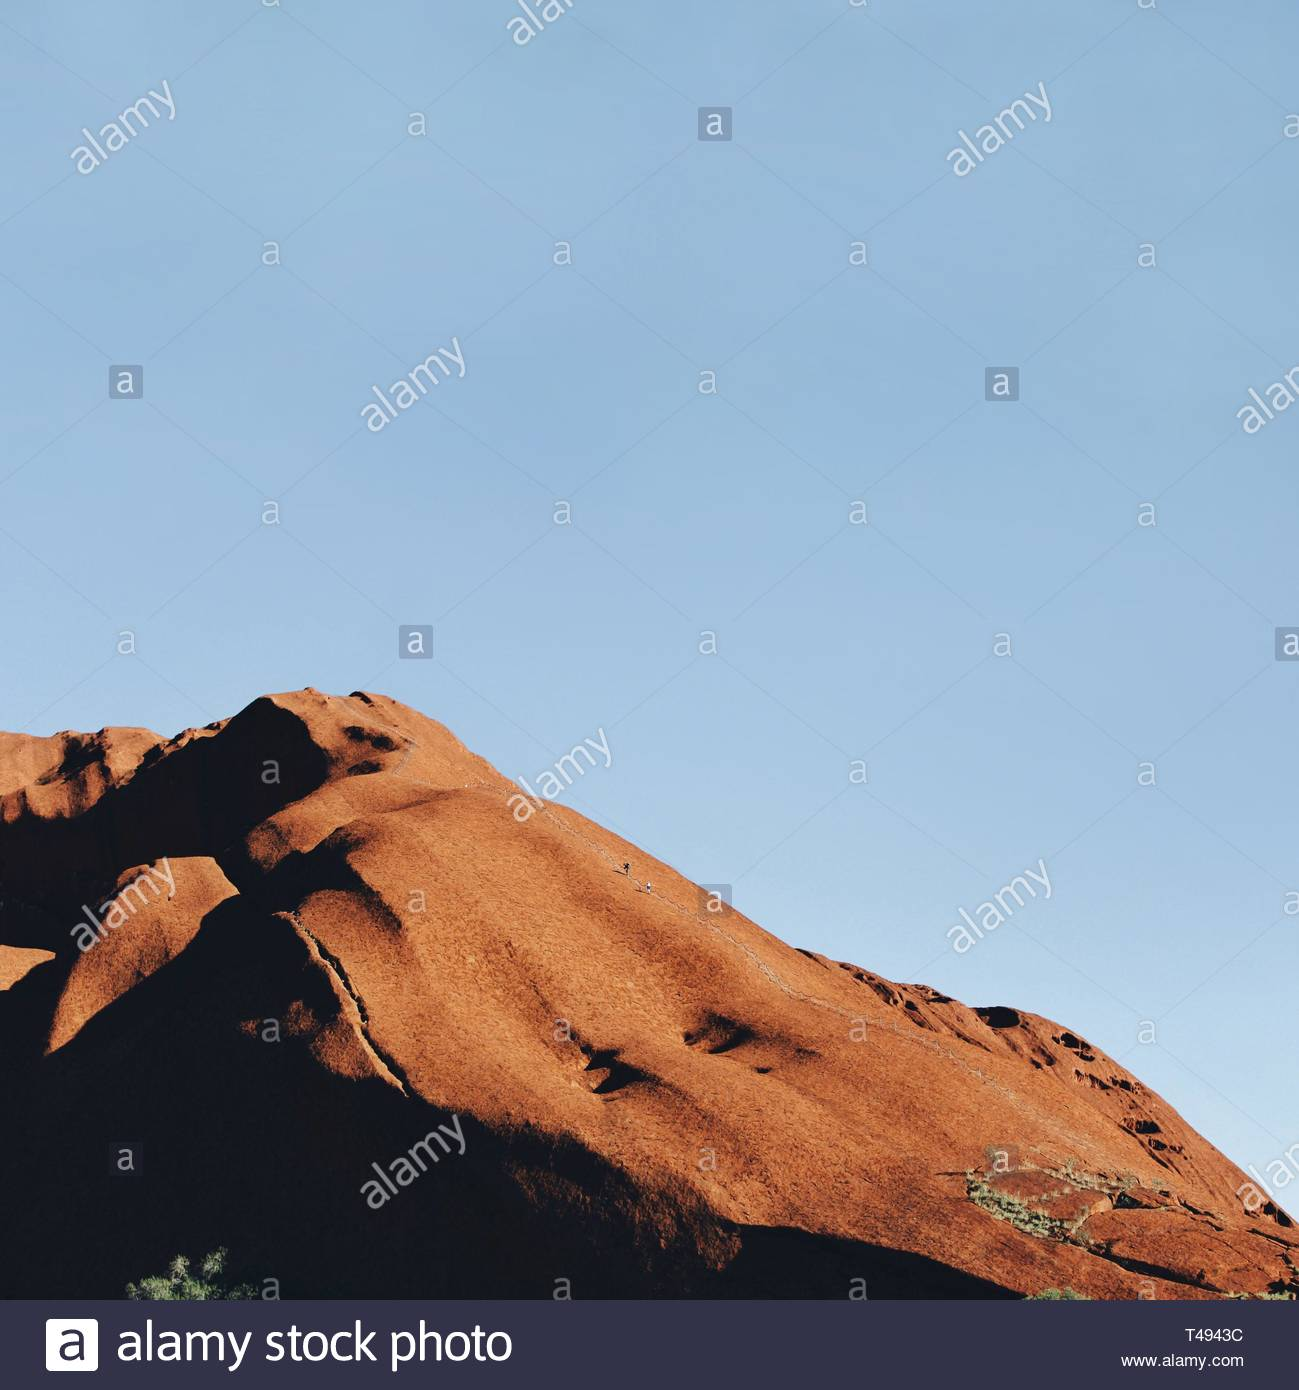 mountain during blue hour - Stock Image